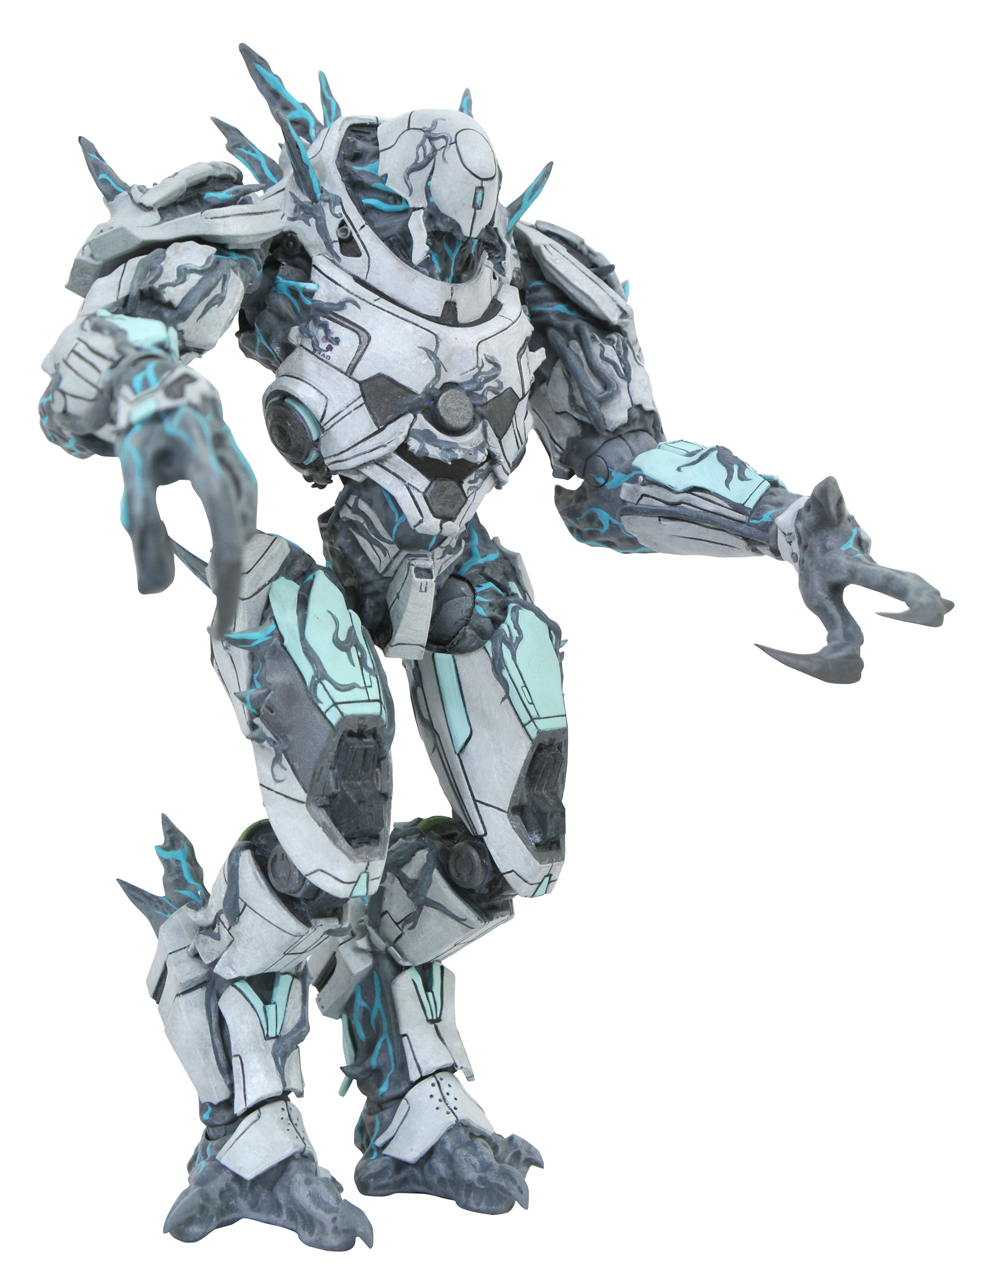 PACIFIC RIM 2 SELECT SERIES 3 DRONE AF